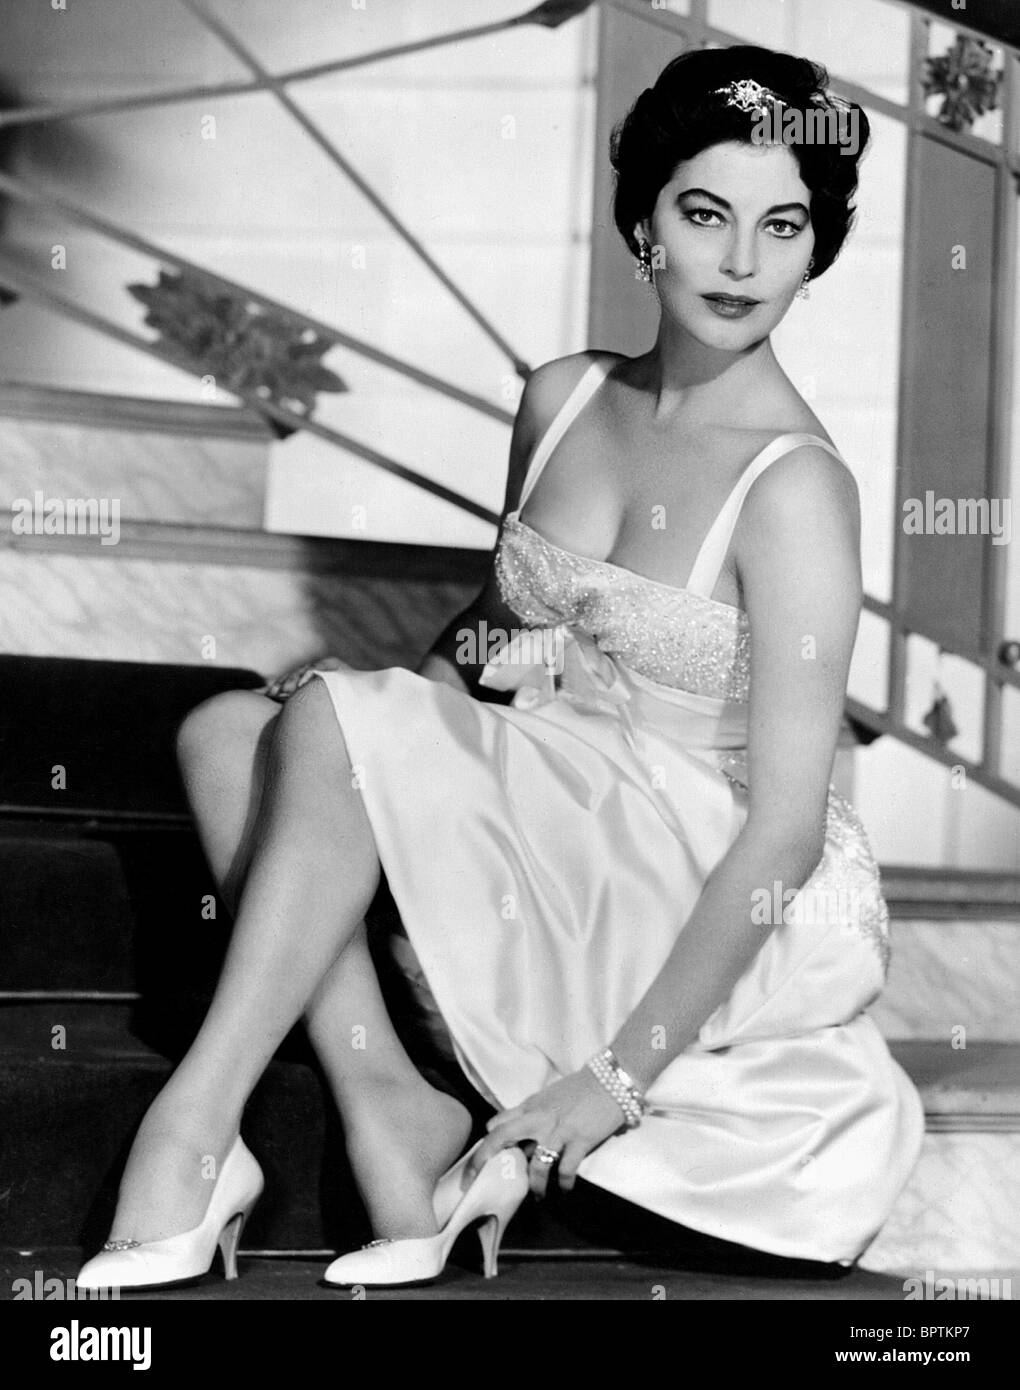 AVA GARDNER ACTRESS 1950 Stock Photo 31275167